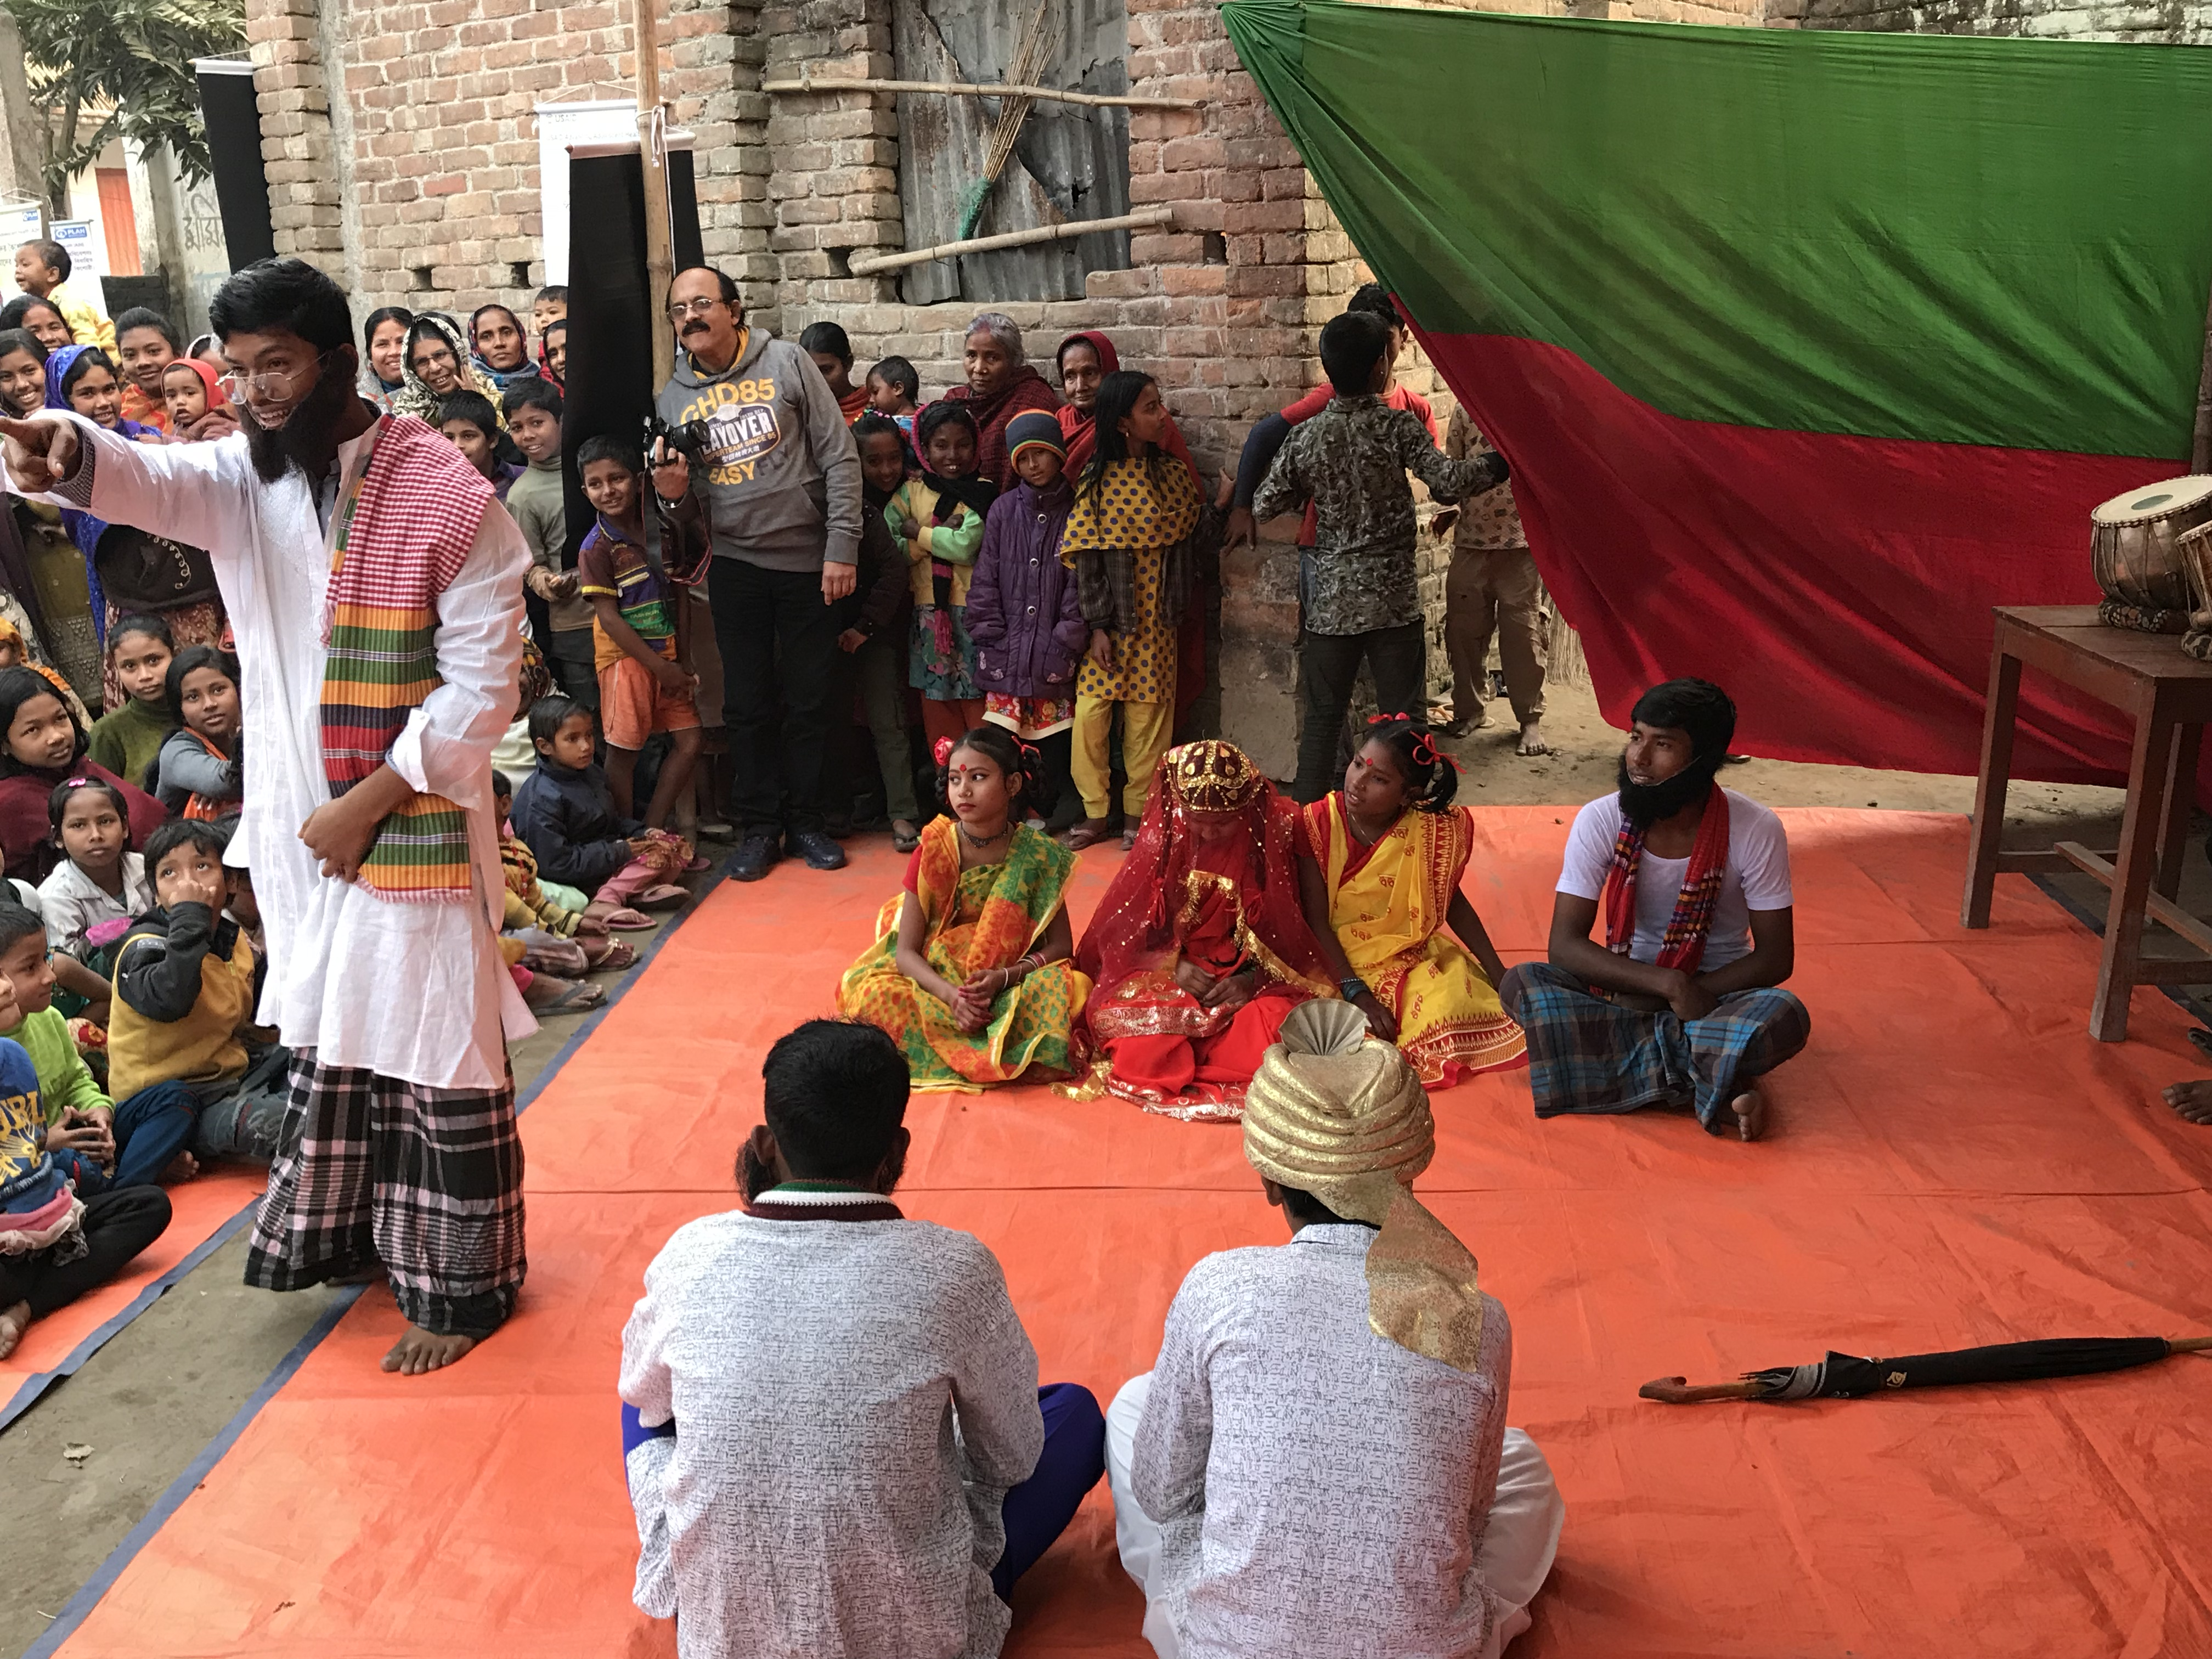 Youth lead theater for development activities in Bangladesh